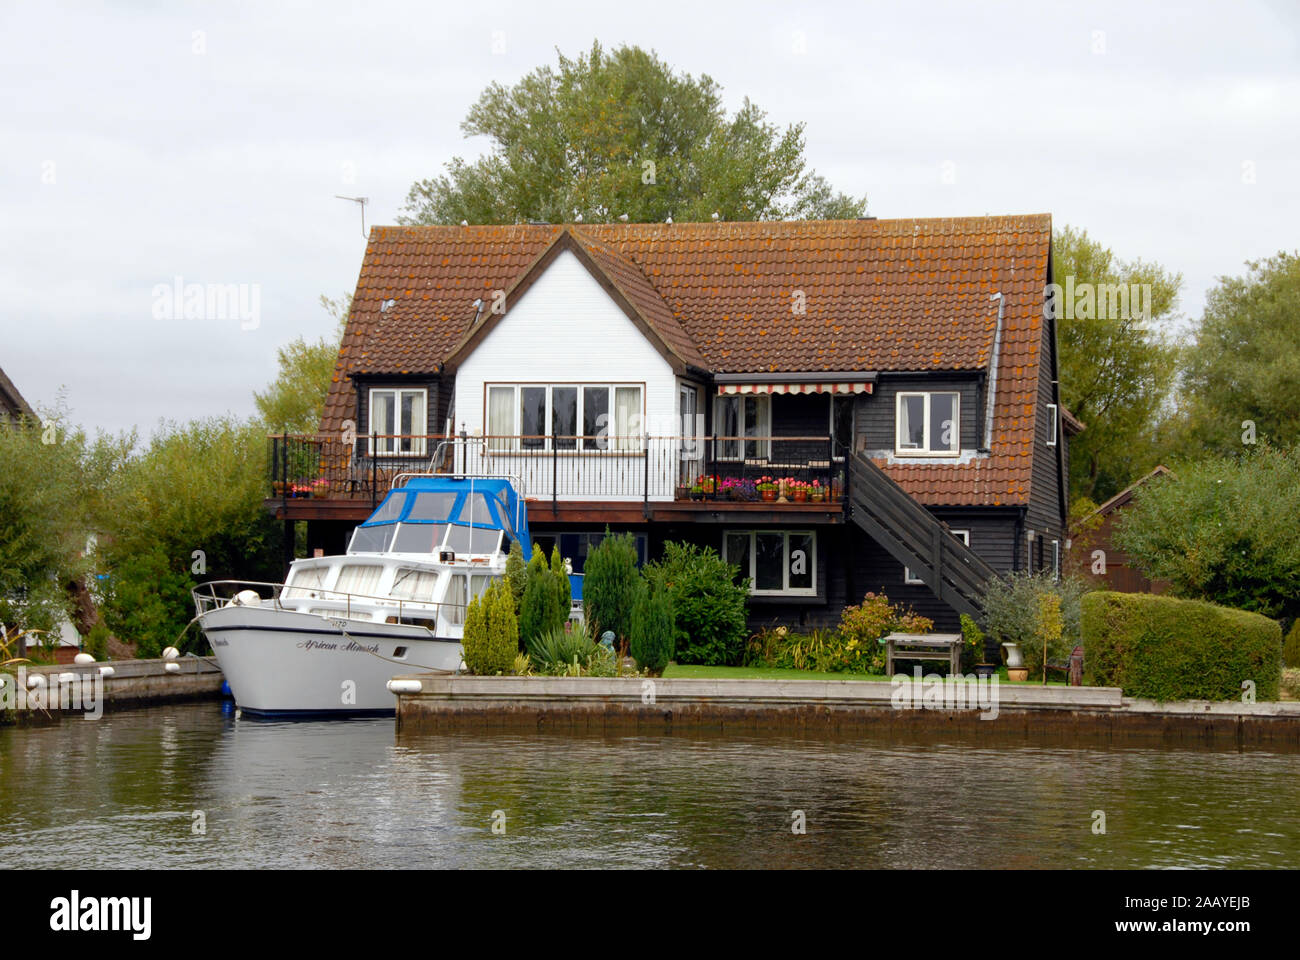 Attractive two-storey riverside house with motor cruiser moored in front, Norfolk Broads, England Stock Photo